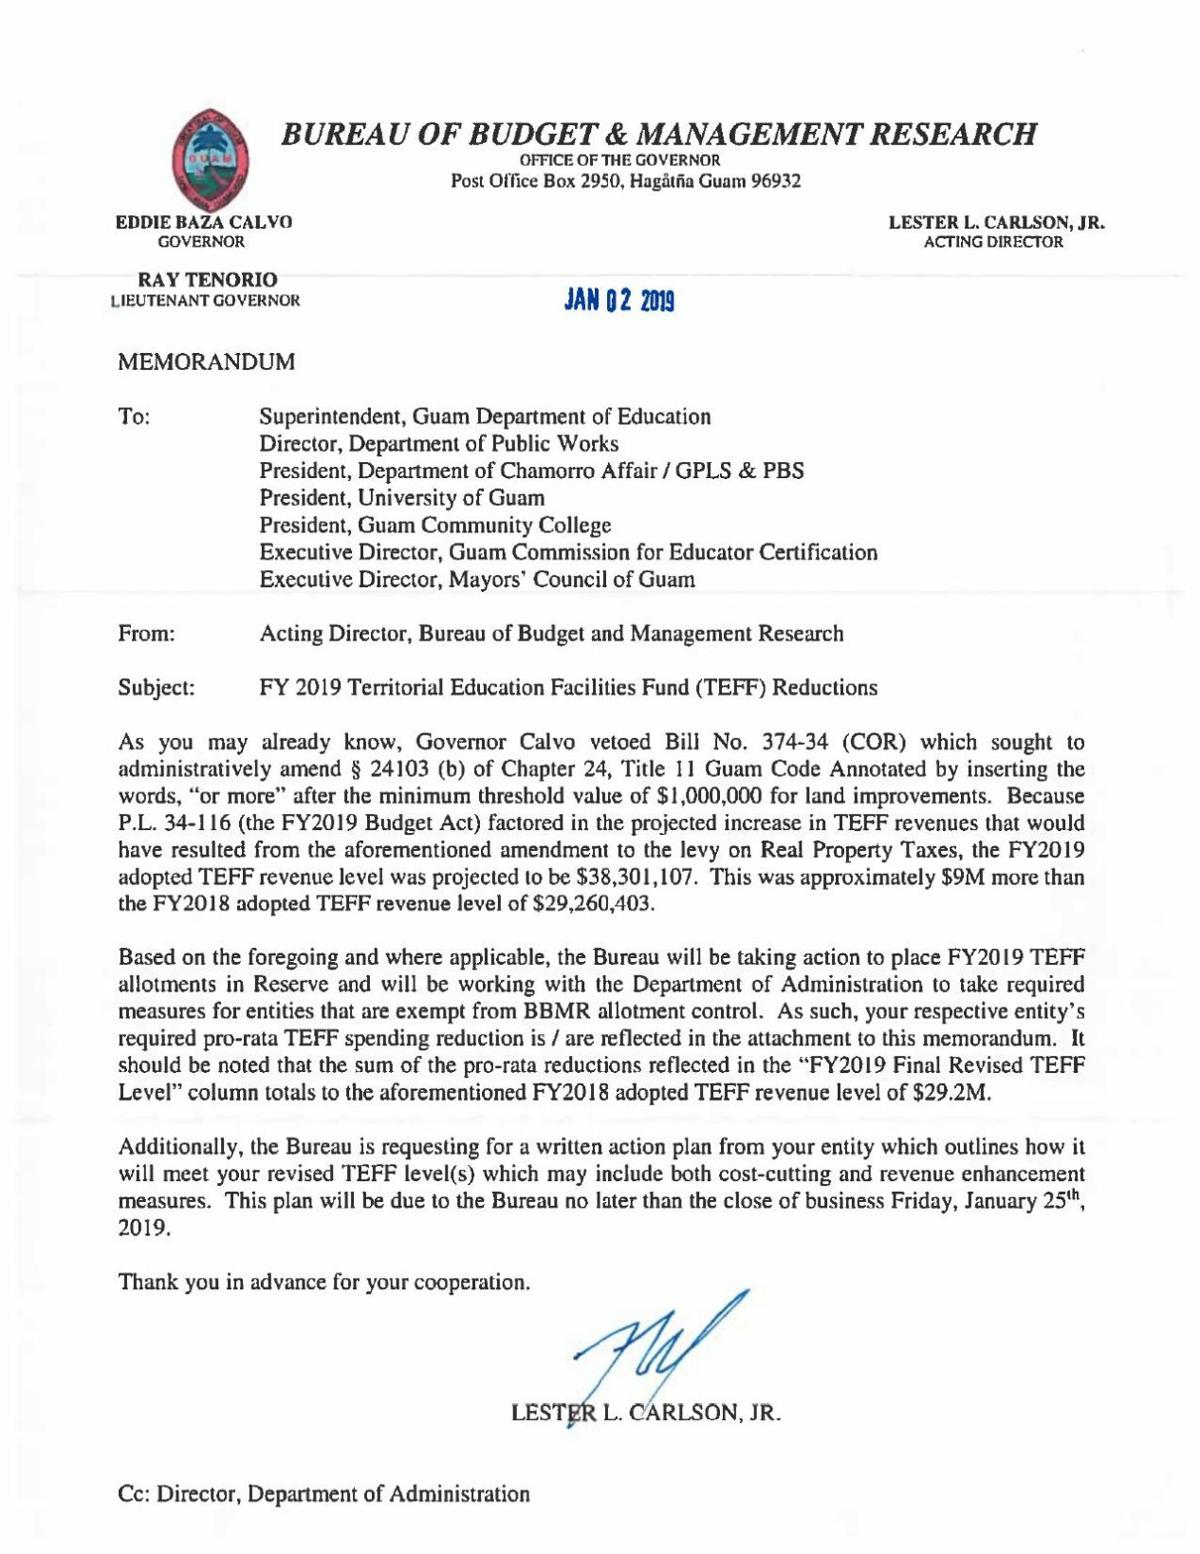 Memo Outlines Education Dept Plans To >> Bbmr Memo Onteff Reductions Postguam Com